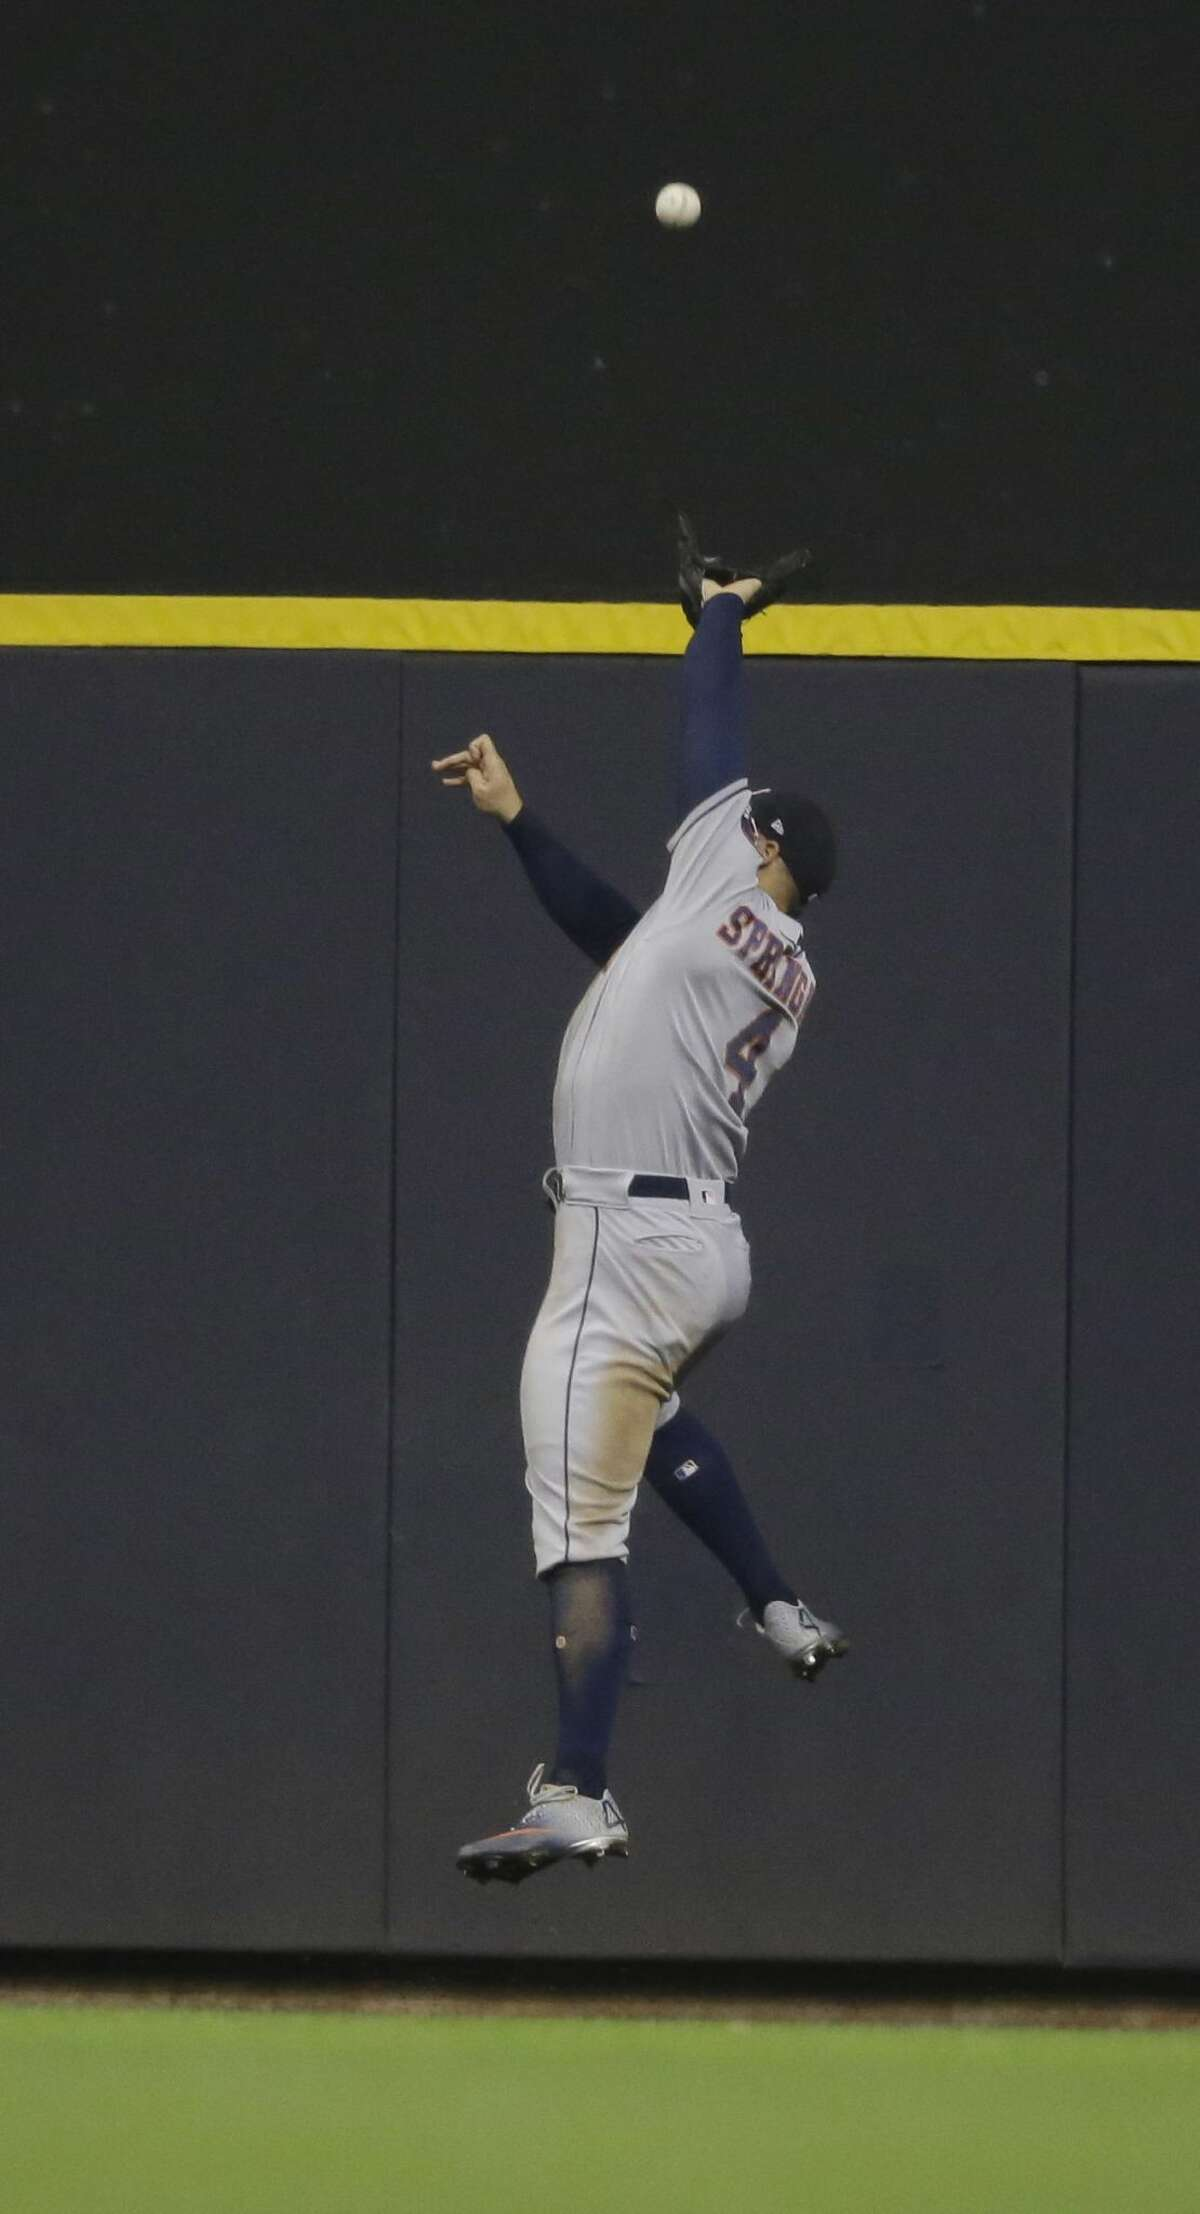 Houston Astros' George Springer makes a leaping catch on a ball hit by Milwaukee Brewers' Ryan Braun during the fifth inning of a baseball game Tuesday, Sept. 3, 2019, in Milwaukee. (AP Photo/Jeffrey Phelps)